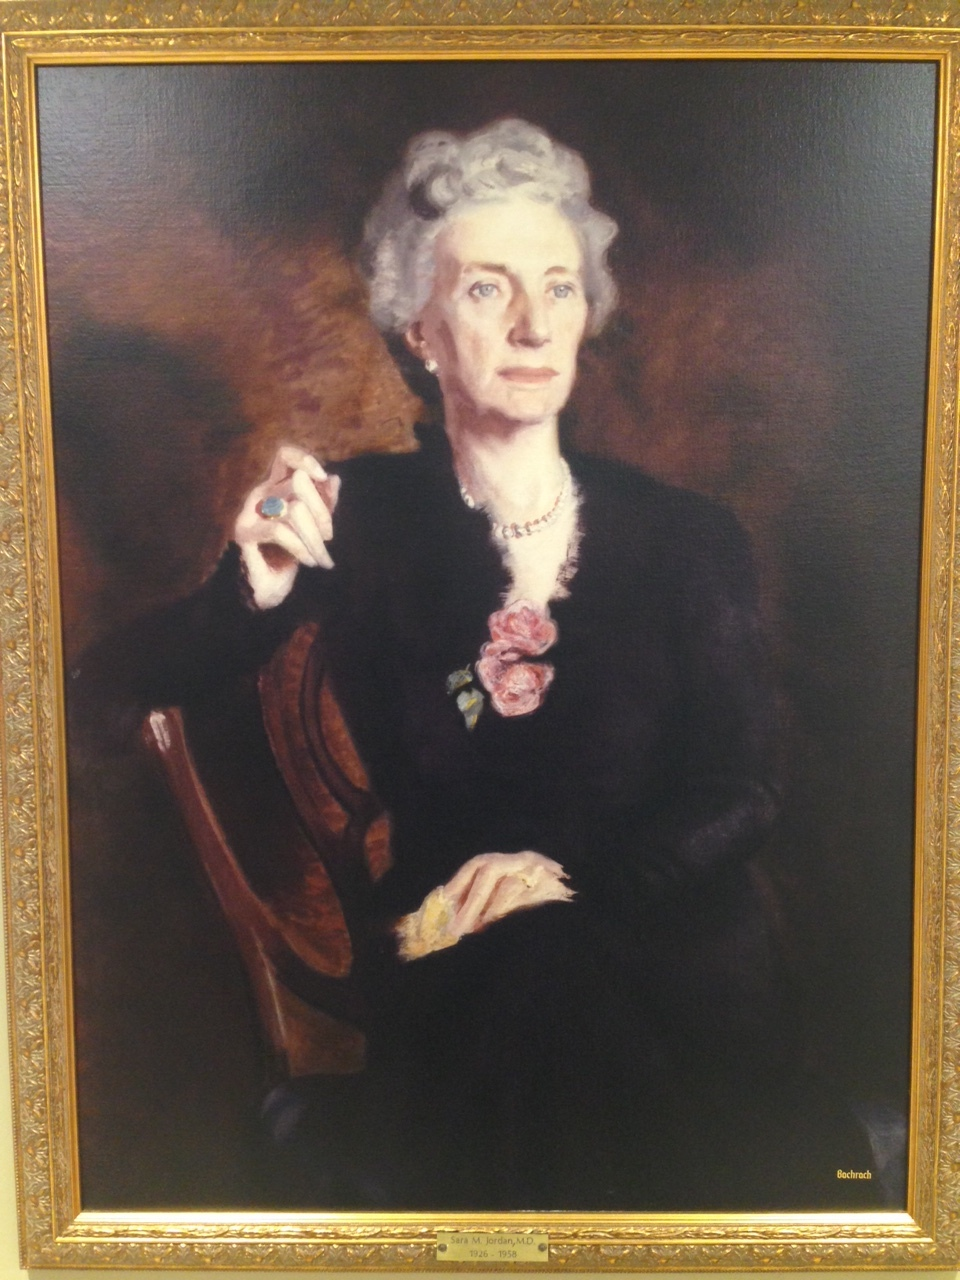 Dr. Sara Murray Jordan, founding member of Lahey Clinic and the first female president of the American Gastroenterological Association